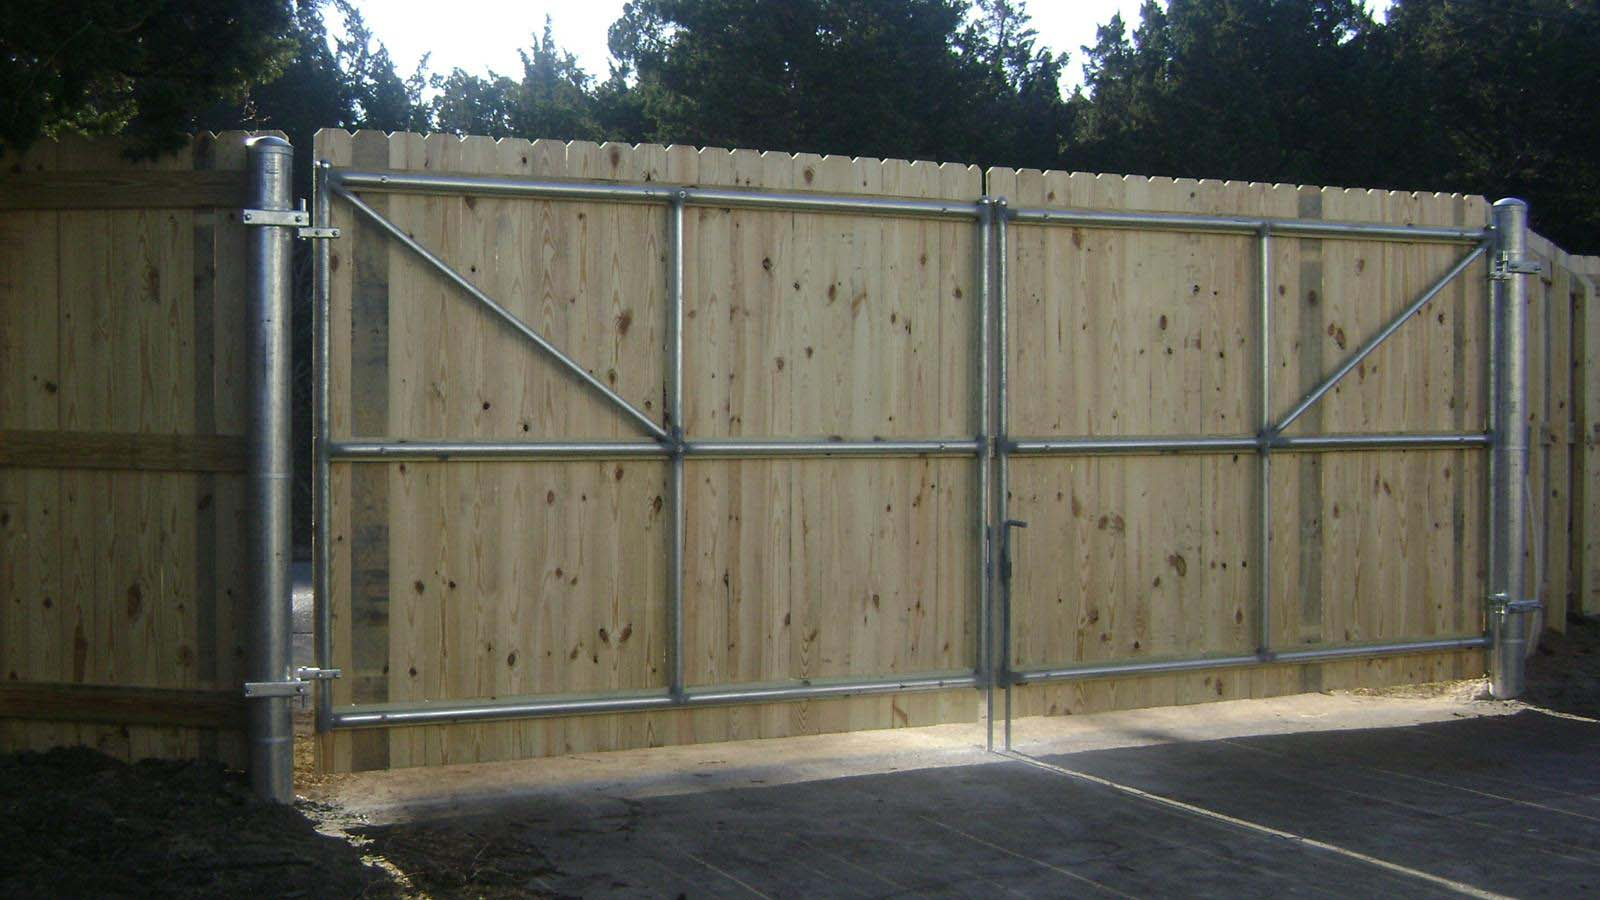 Commercial Wood Fence Fences Unlimited Fences Unlimited pertaining to dimensions 1600 X 900